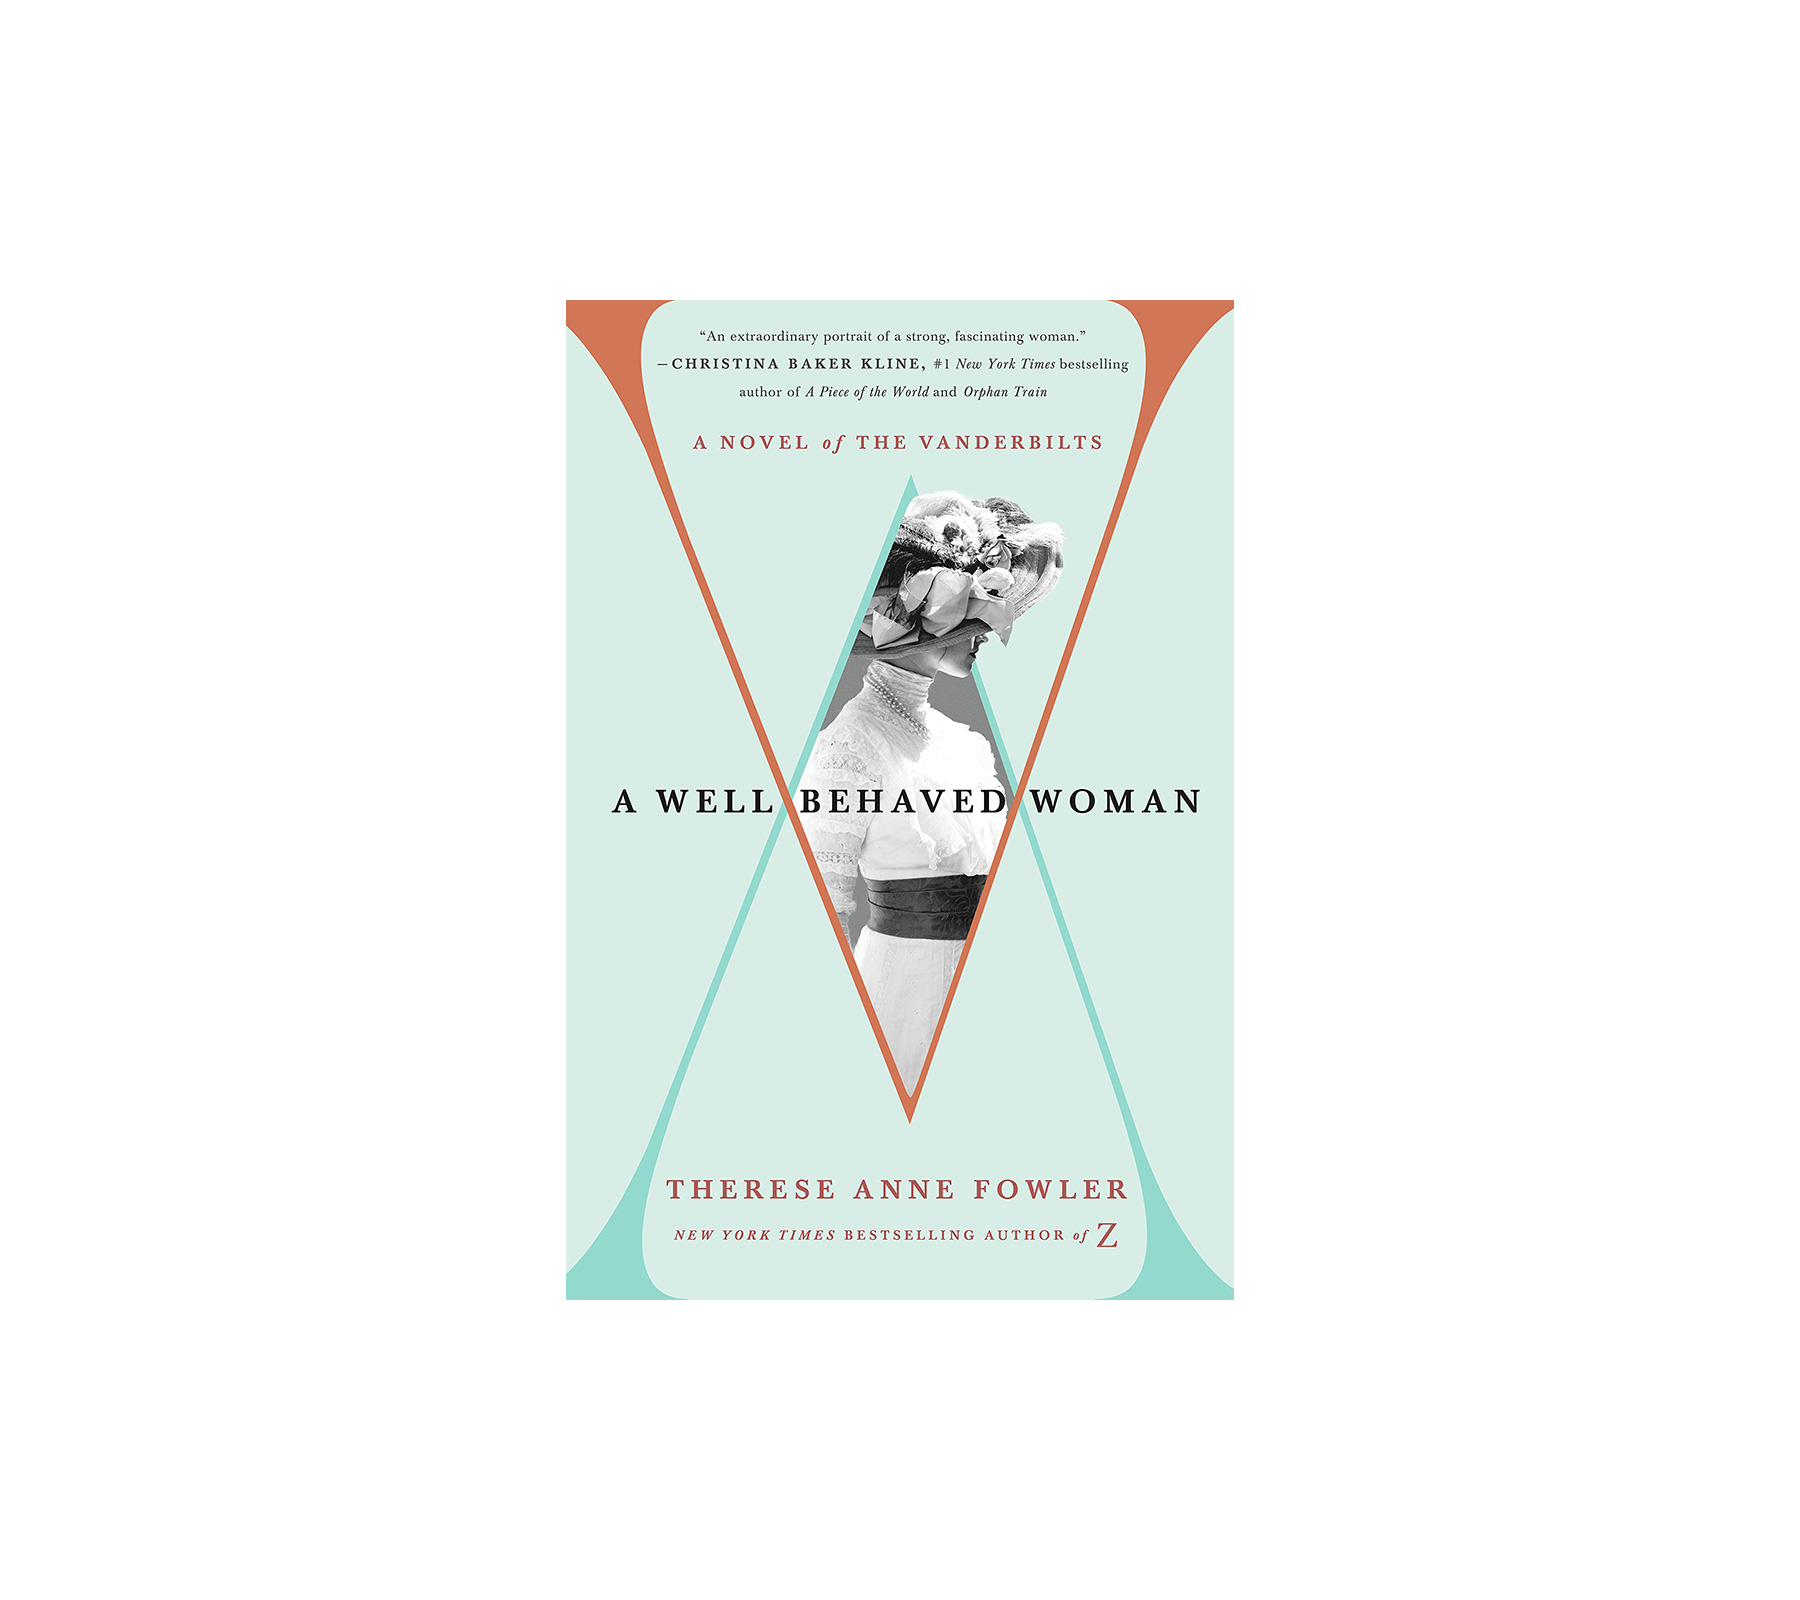 A Well-Behaved Woman, by Therese Anne Fowler